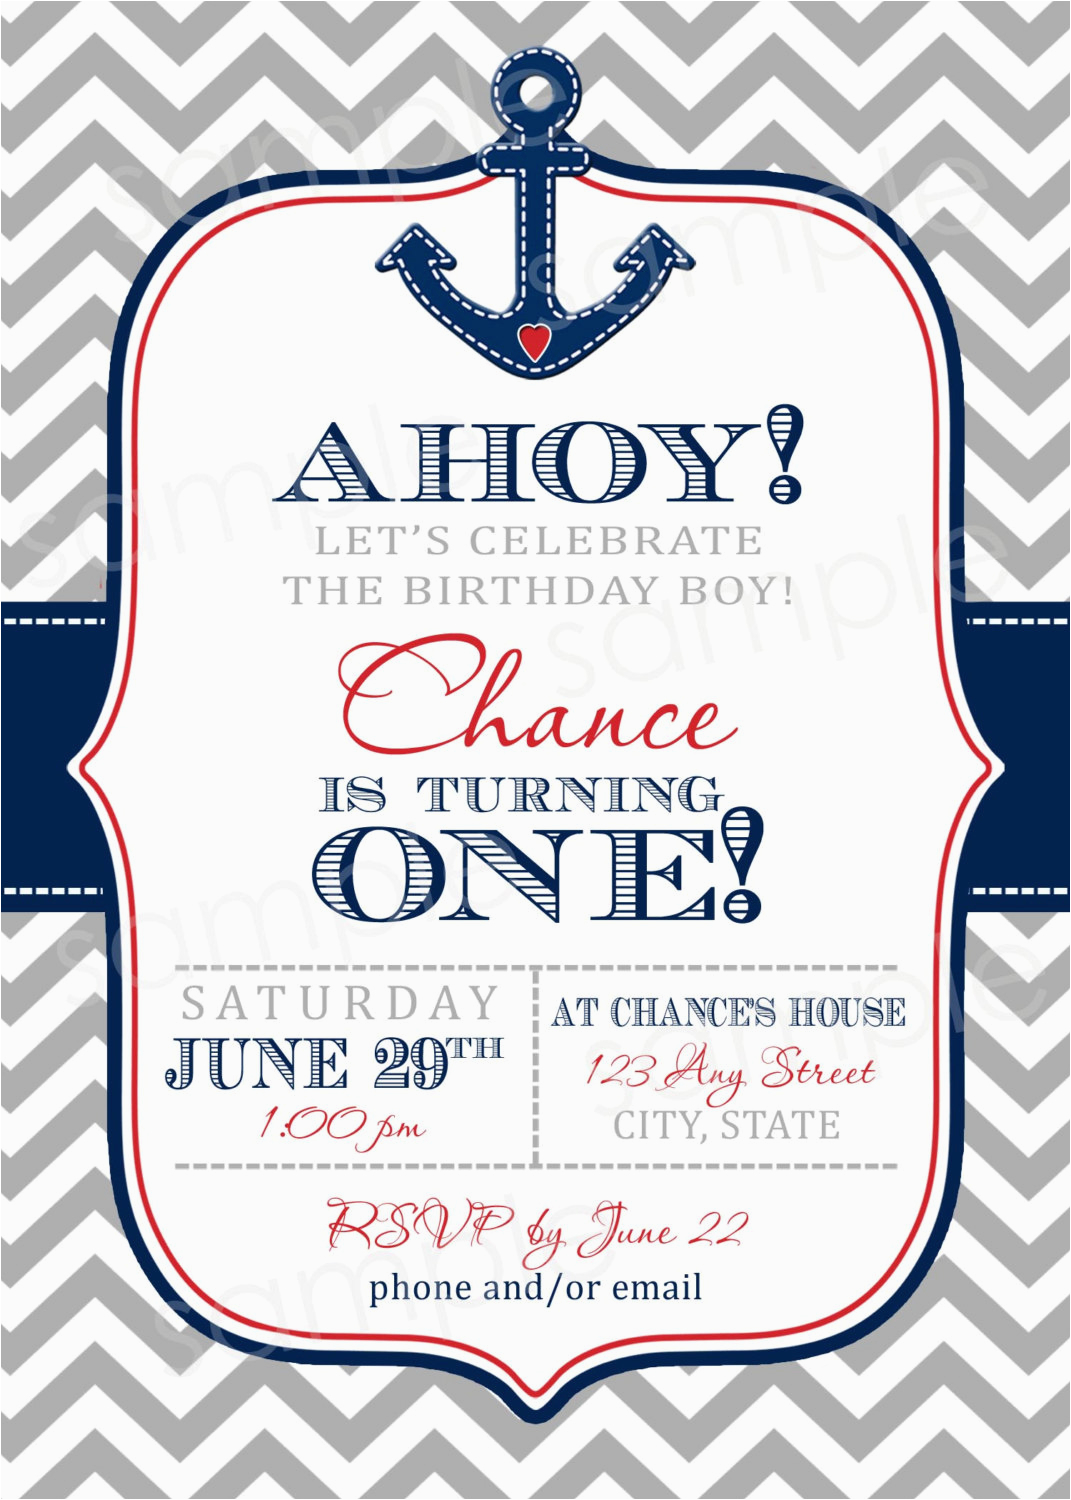 Nautical themed First Birthday Invitations Nautical Birthday Invitation Templates